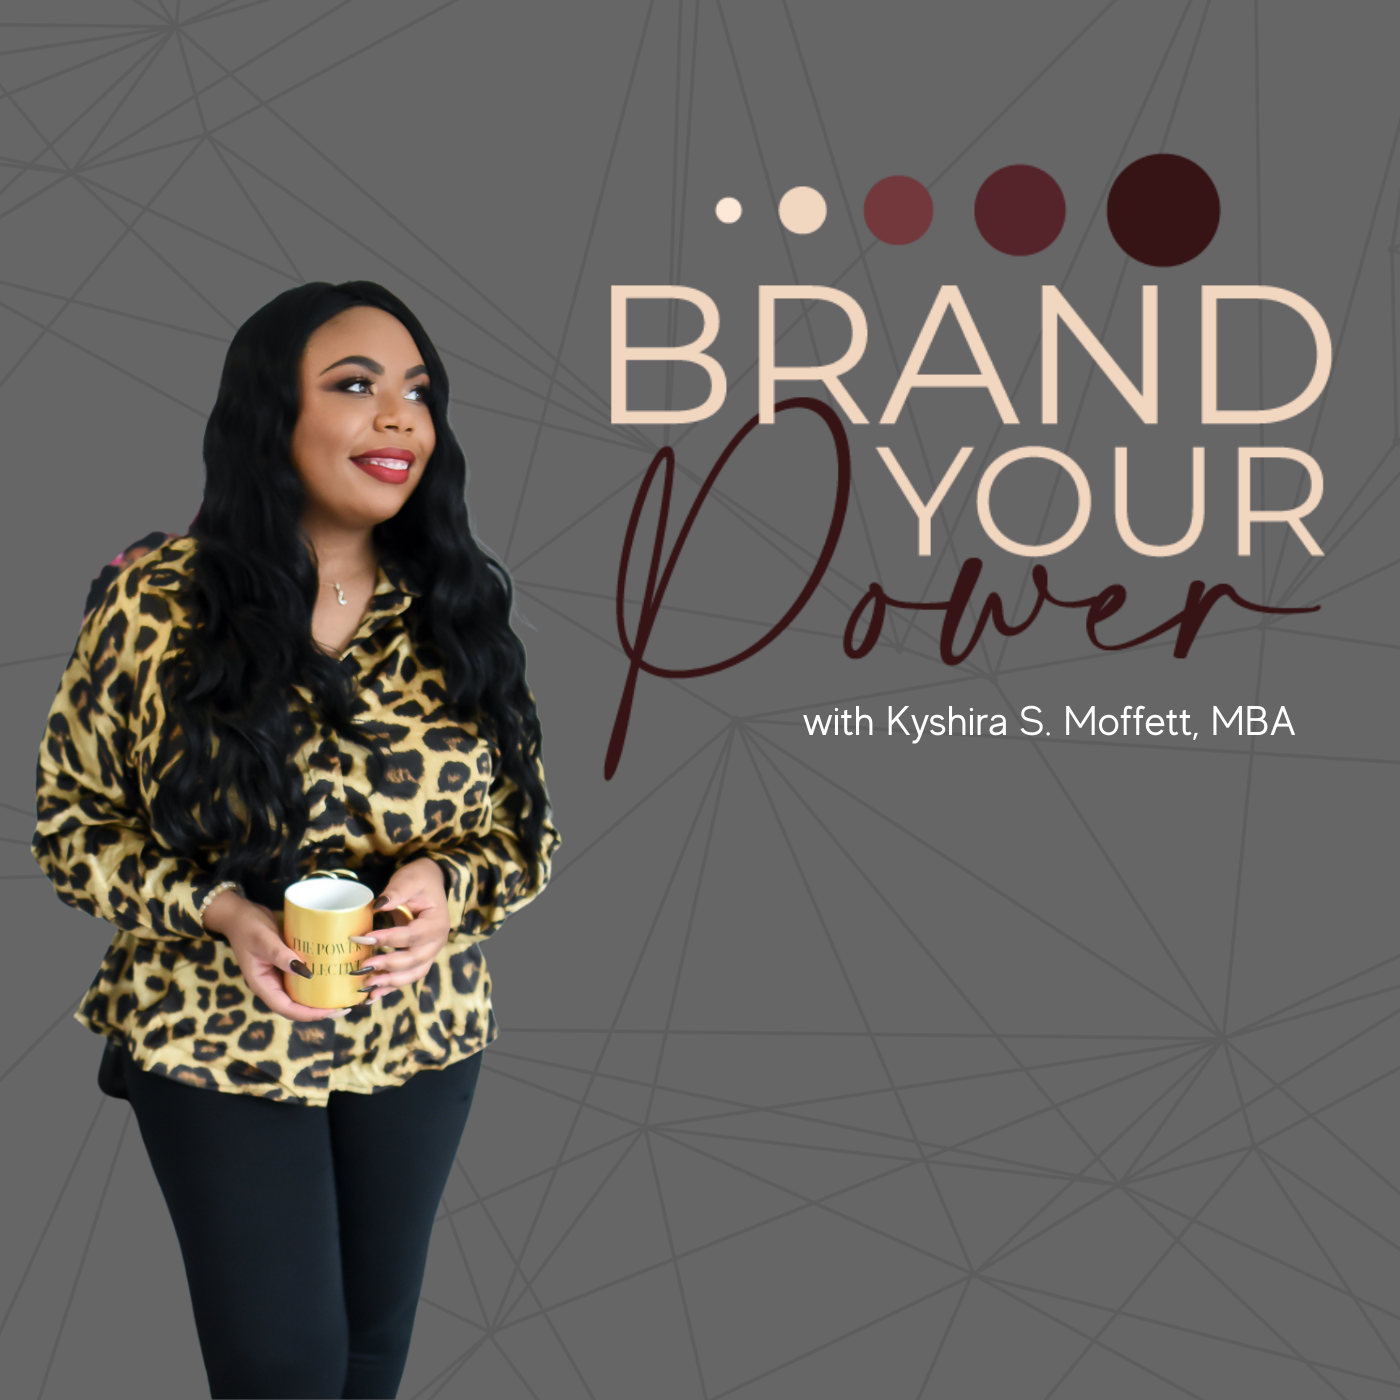 Brand Your Power podcast show image